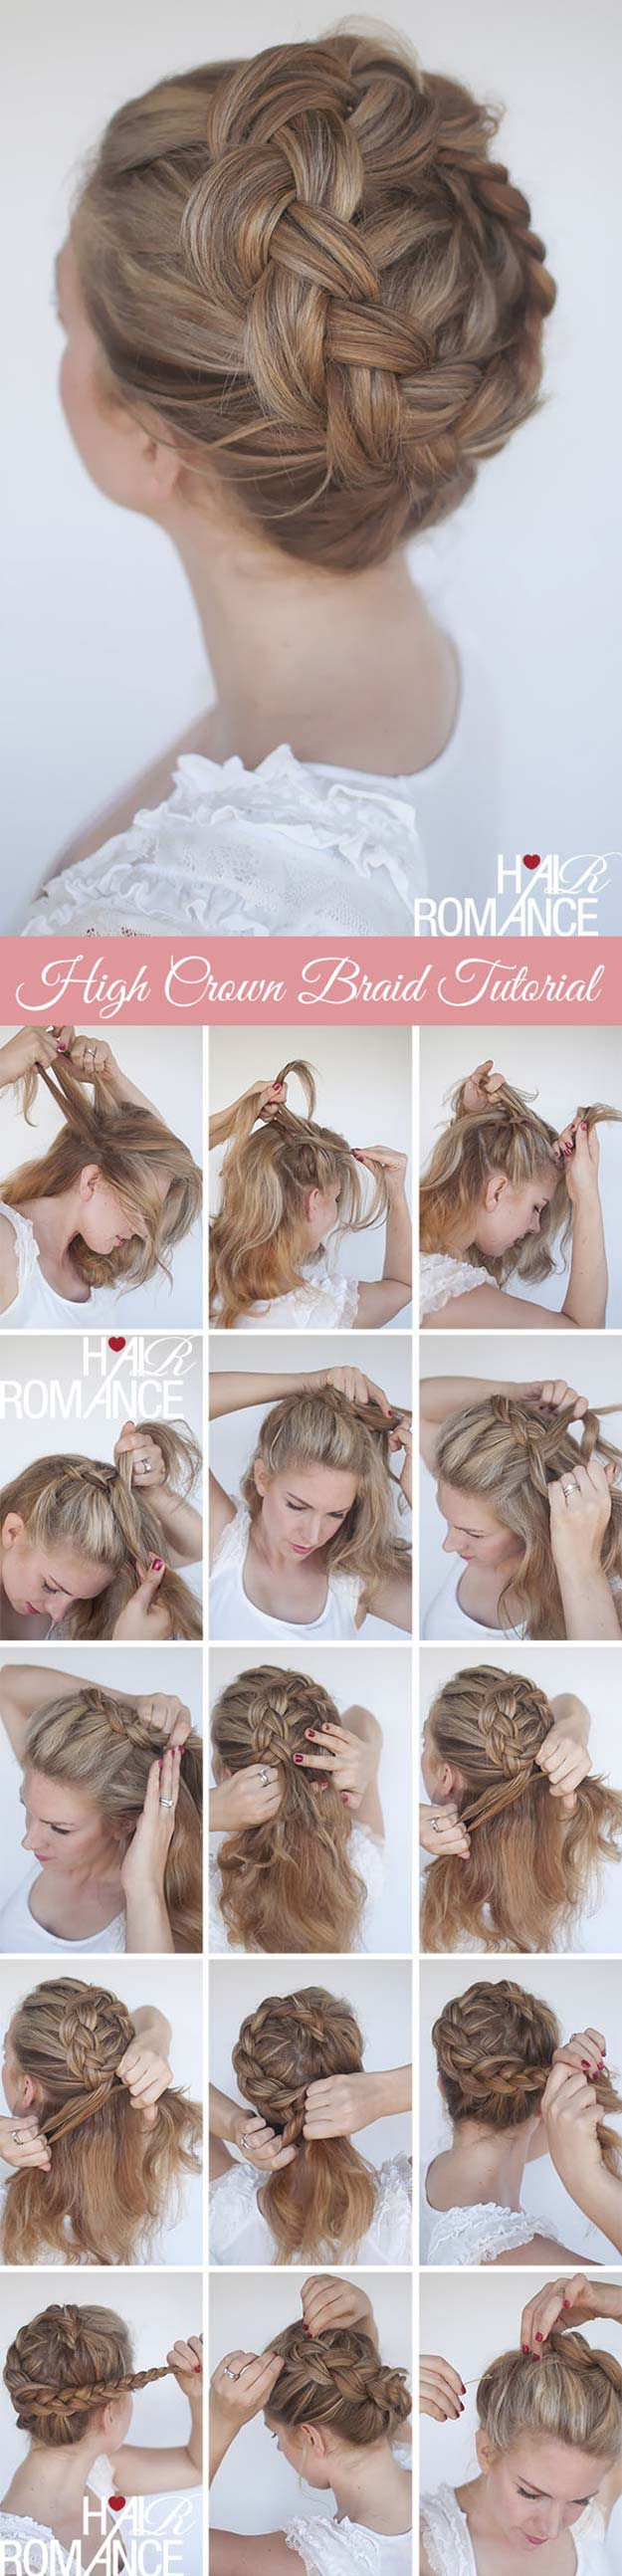 Surprising 40 Of The Best Cute Hair Braiding Tutorials Diy Projects For Teens Short Hairstyles Gunalazisus